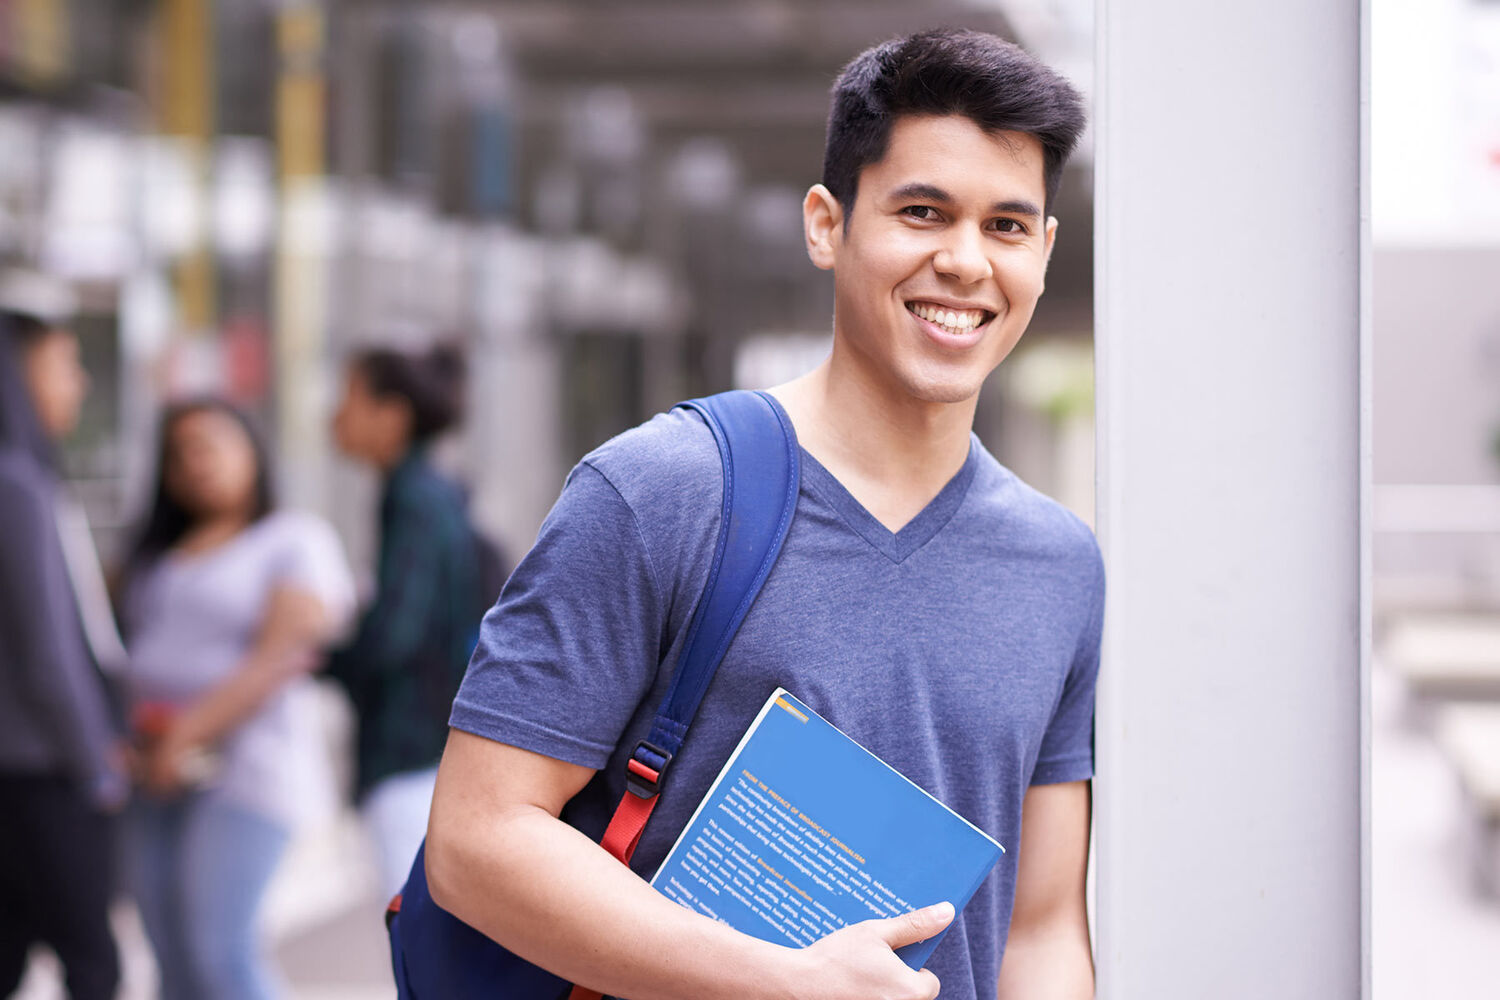 Young Man With Dark Hair In Blue Tshirt Wearing Backpack And Holding Textbook